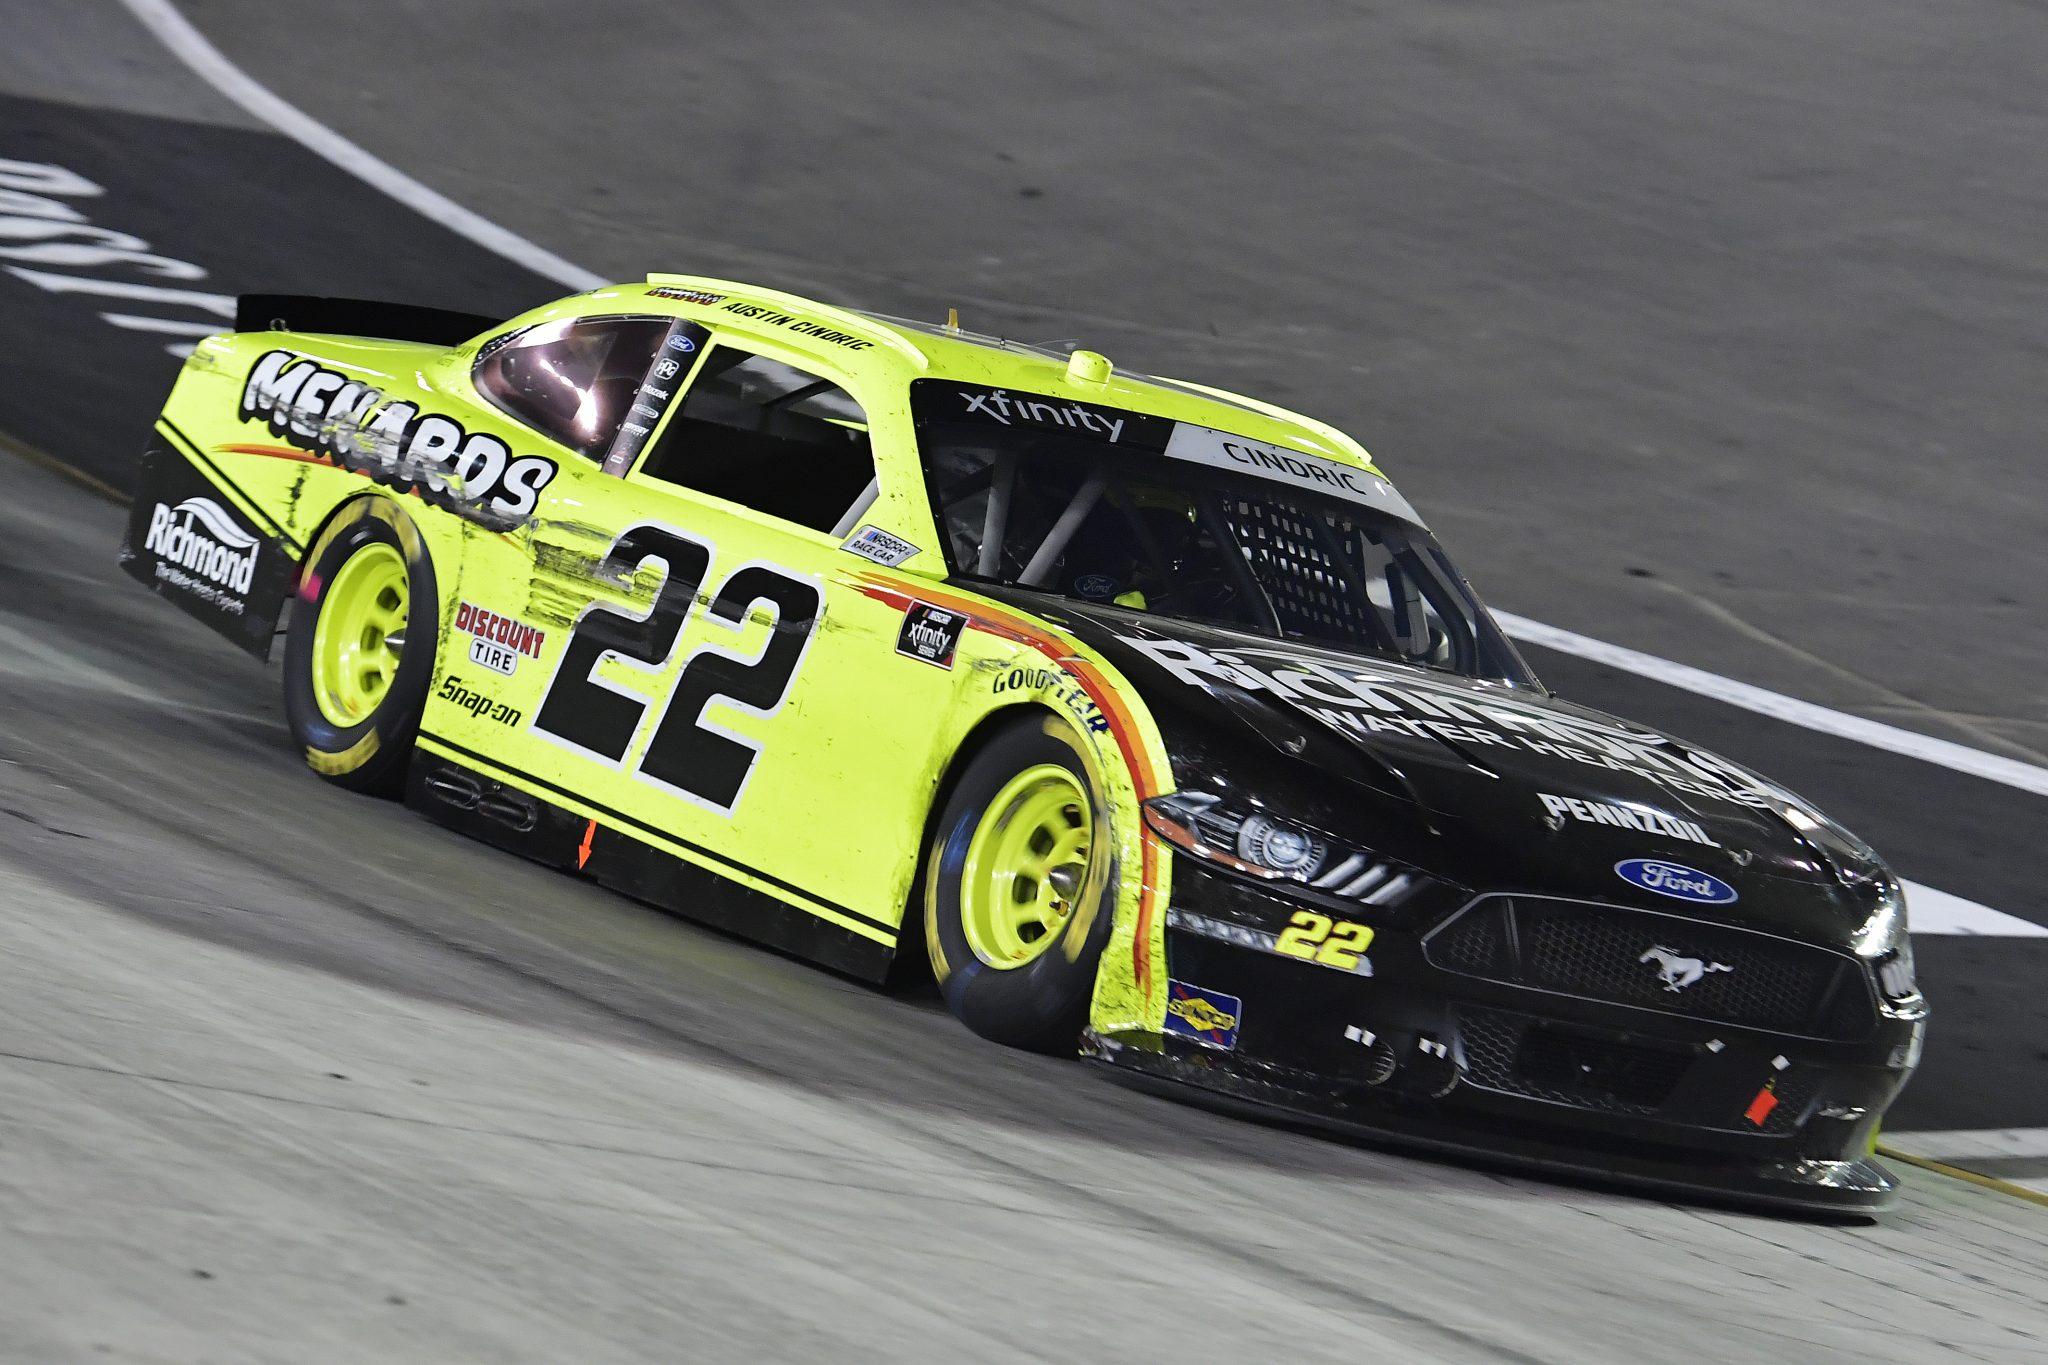 BRISTOL, TENNESSEE - SEPTEMBER 17: Austin Cindric, driver of the #22 Menards/Richmond Ford,drives during the NASCAR Xfinity Series Food City 300 at Bristol Motor Speedway on September 17, 2021 in Bristol, Tennessee. (Photo by Logan Riely/Getty Images) | Getty Images